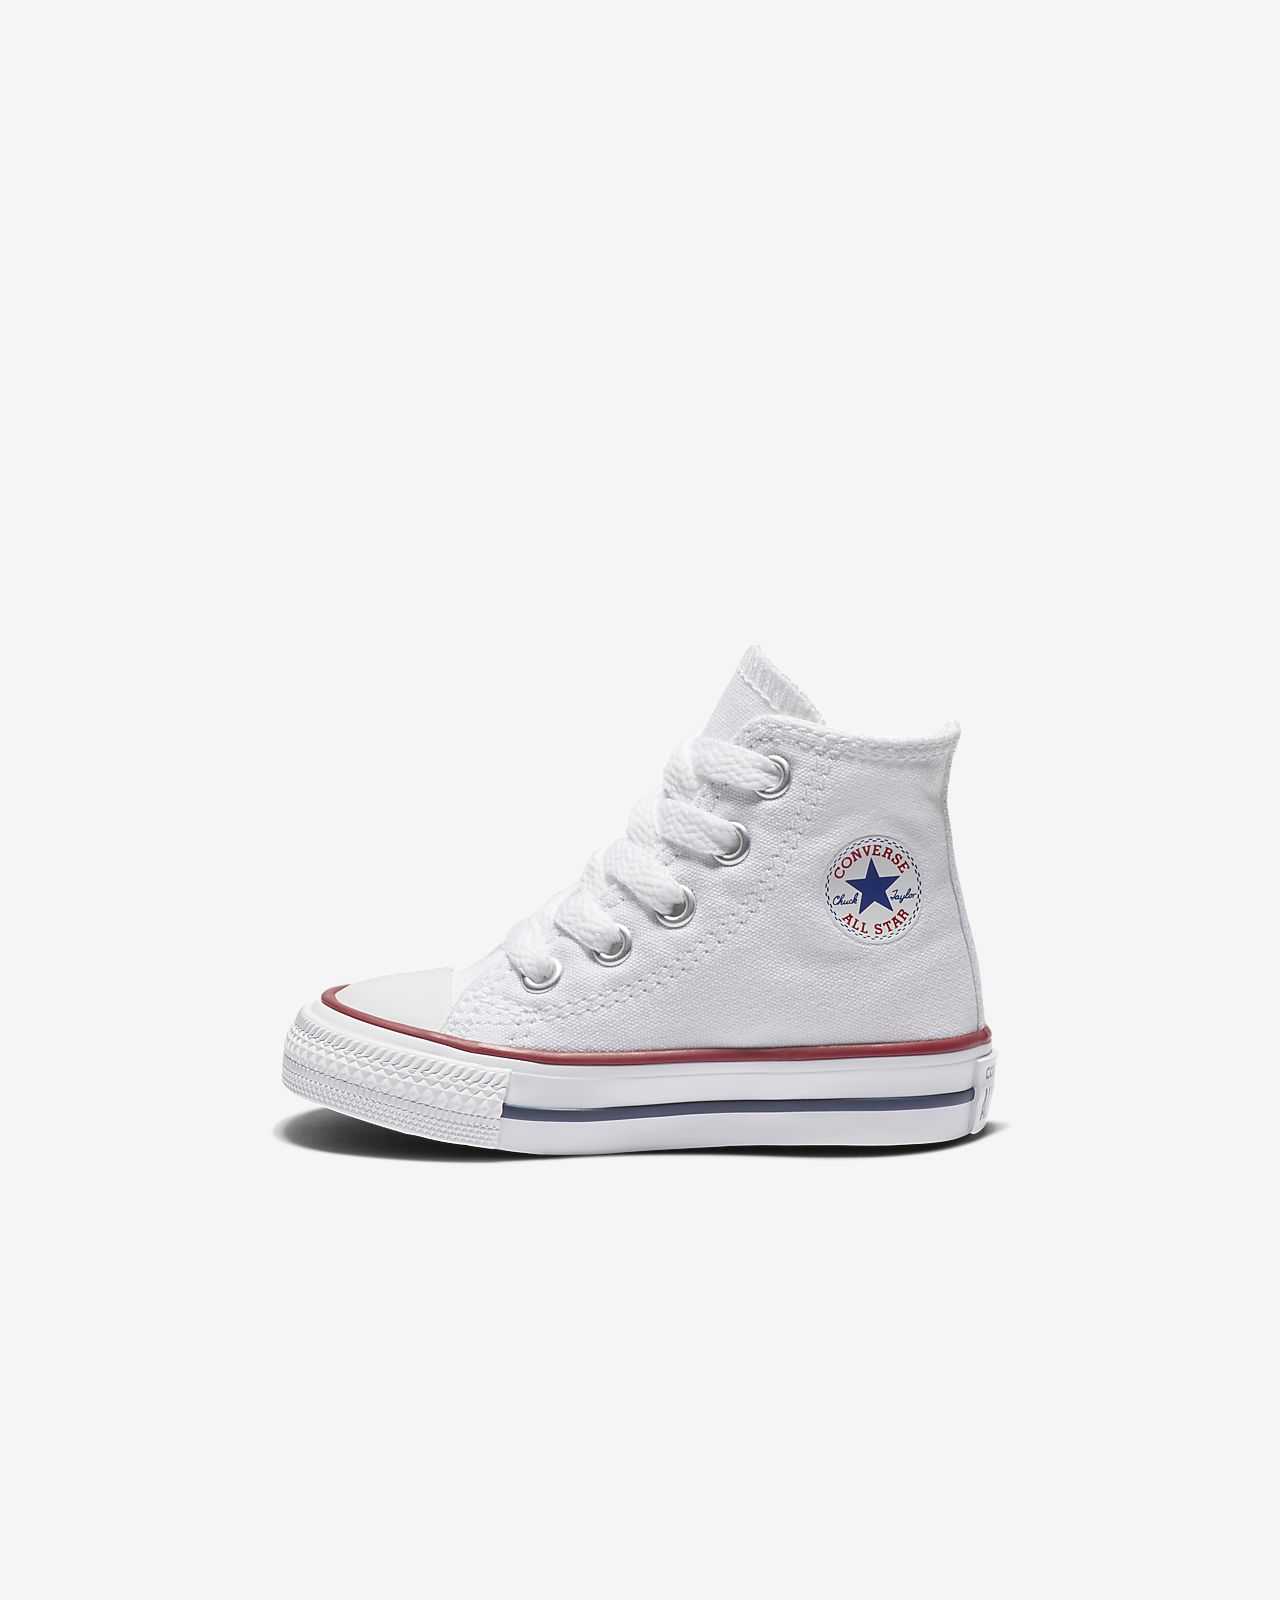 98887799445 Converse Chuck Taylor All Star High Top (2c-10c) Infant/Toddler Shoe ...